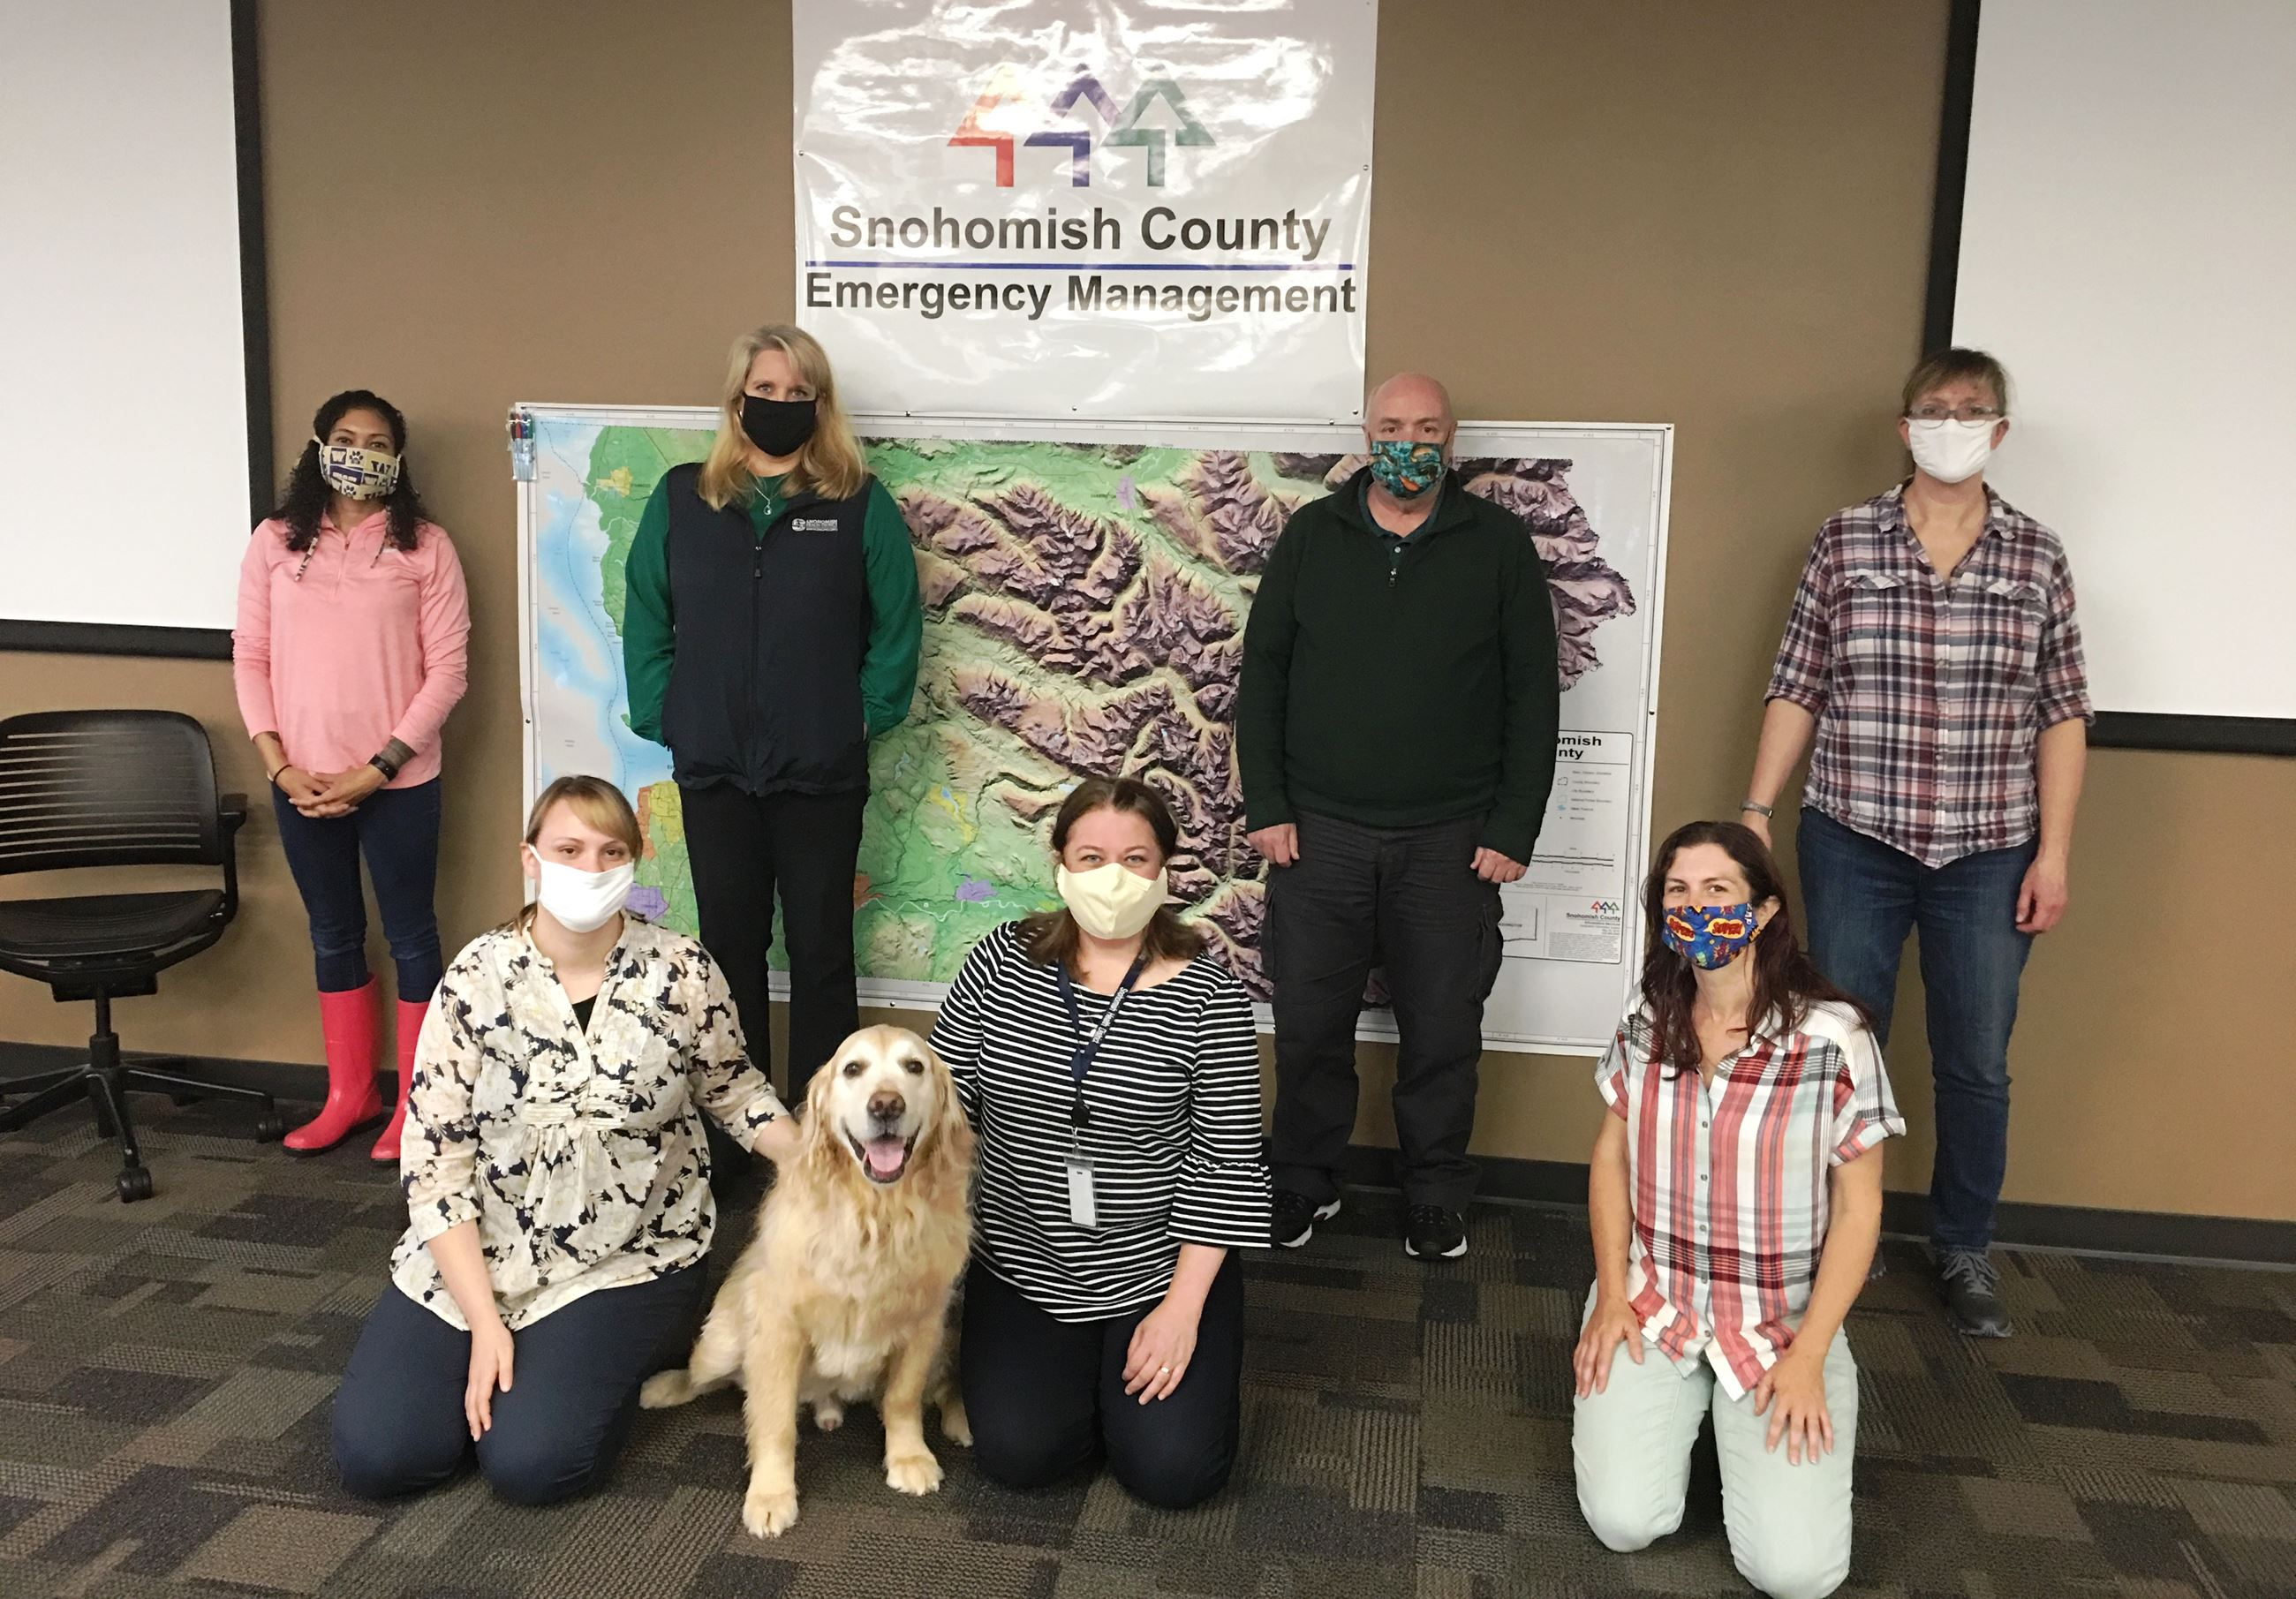 Snohomish County DEM staff in face covers